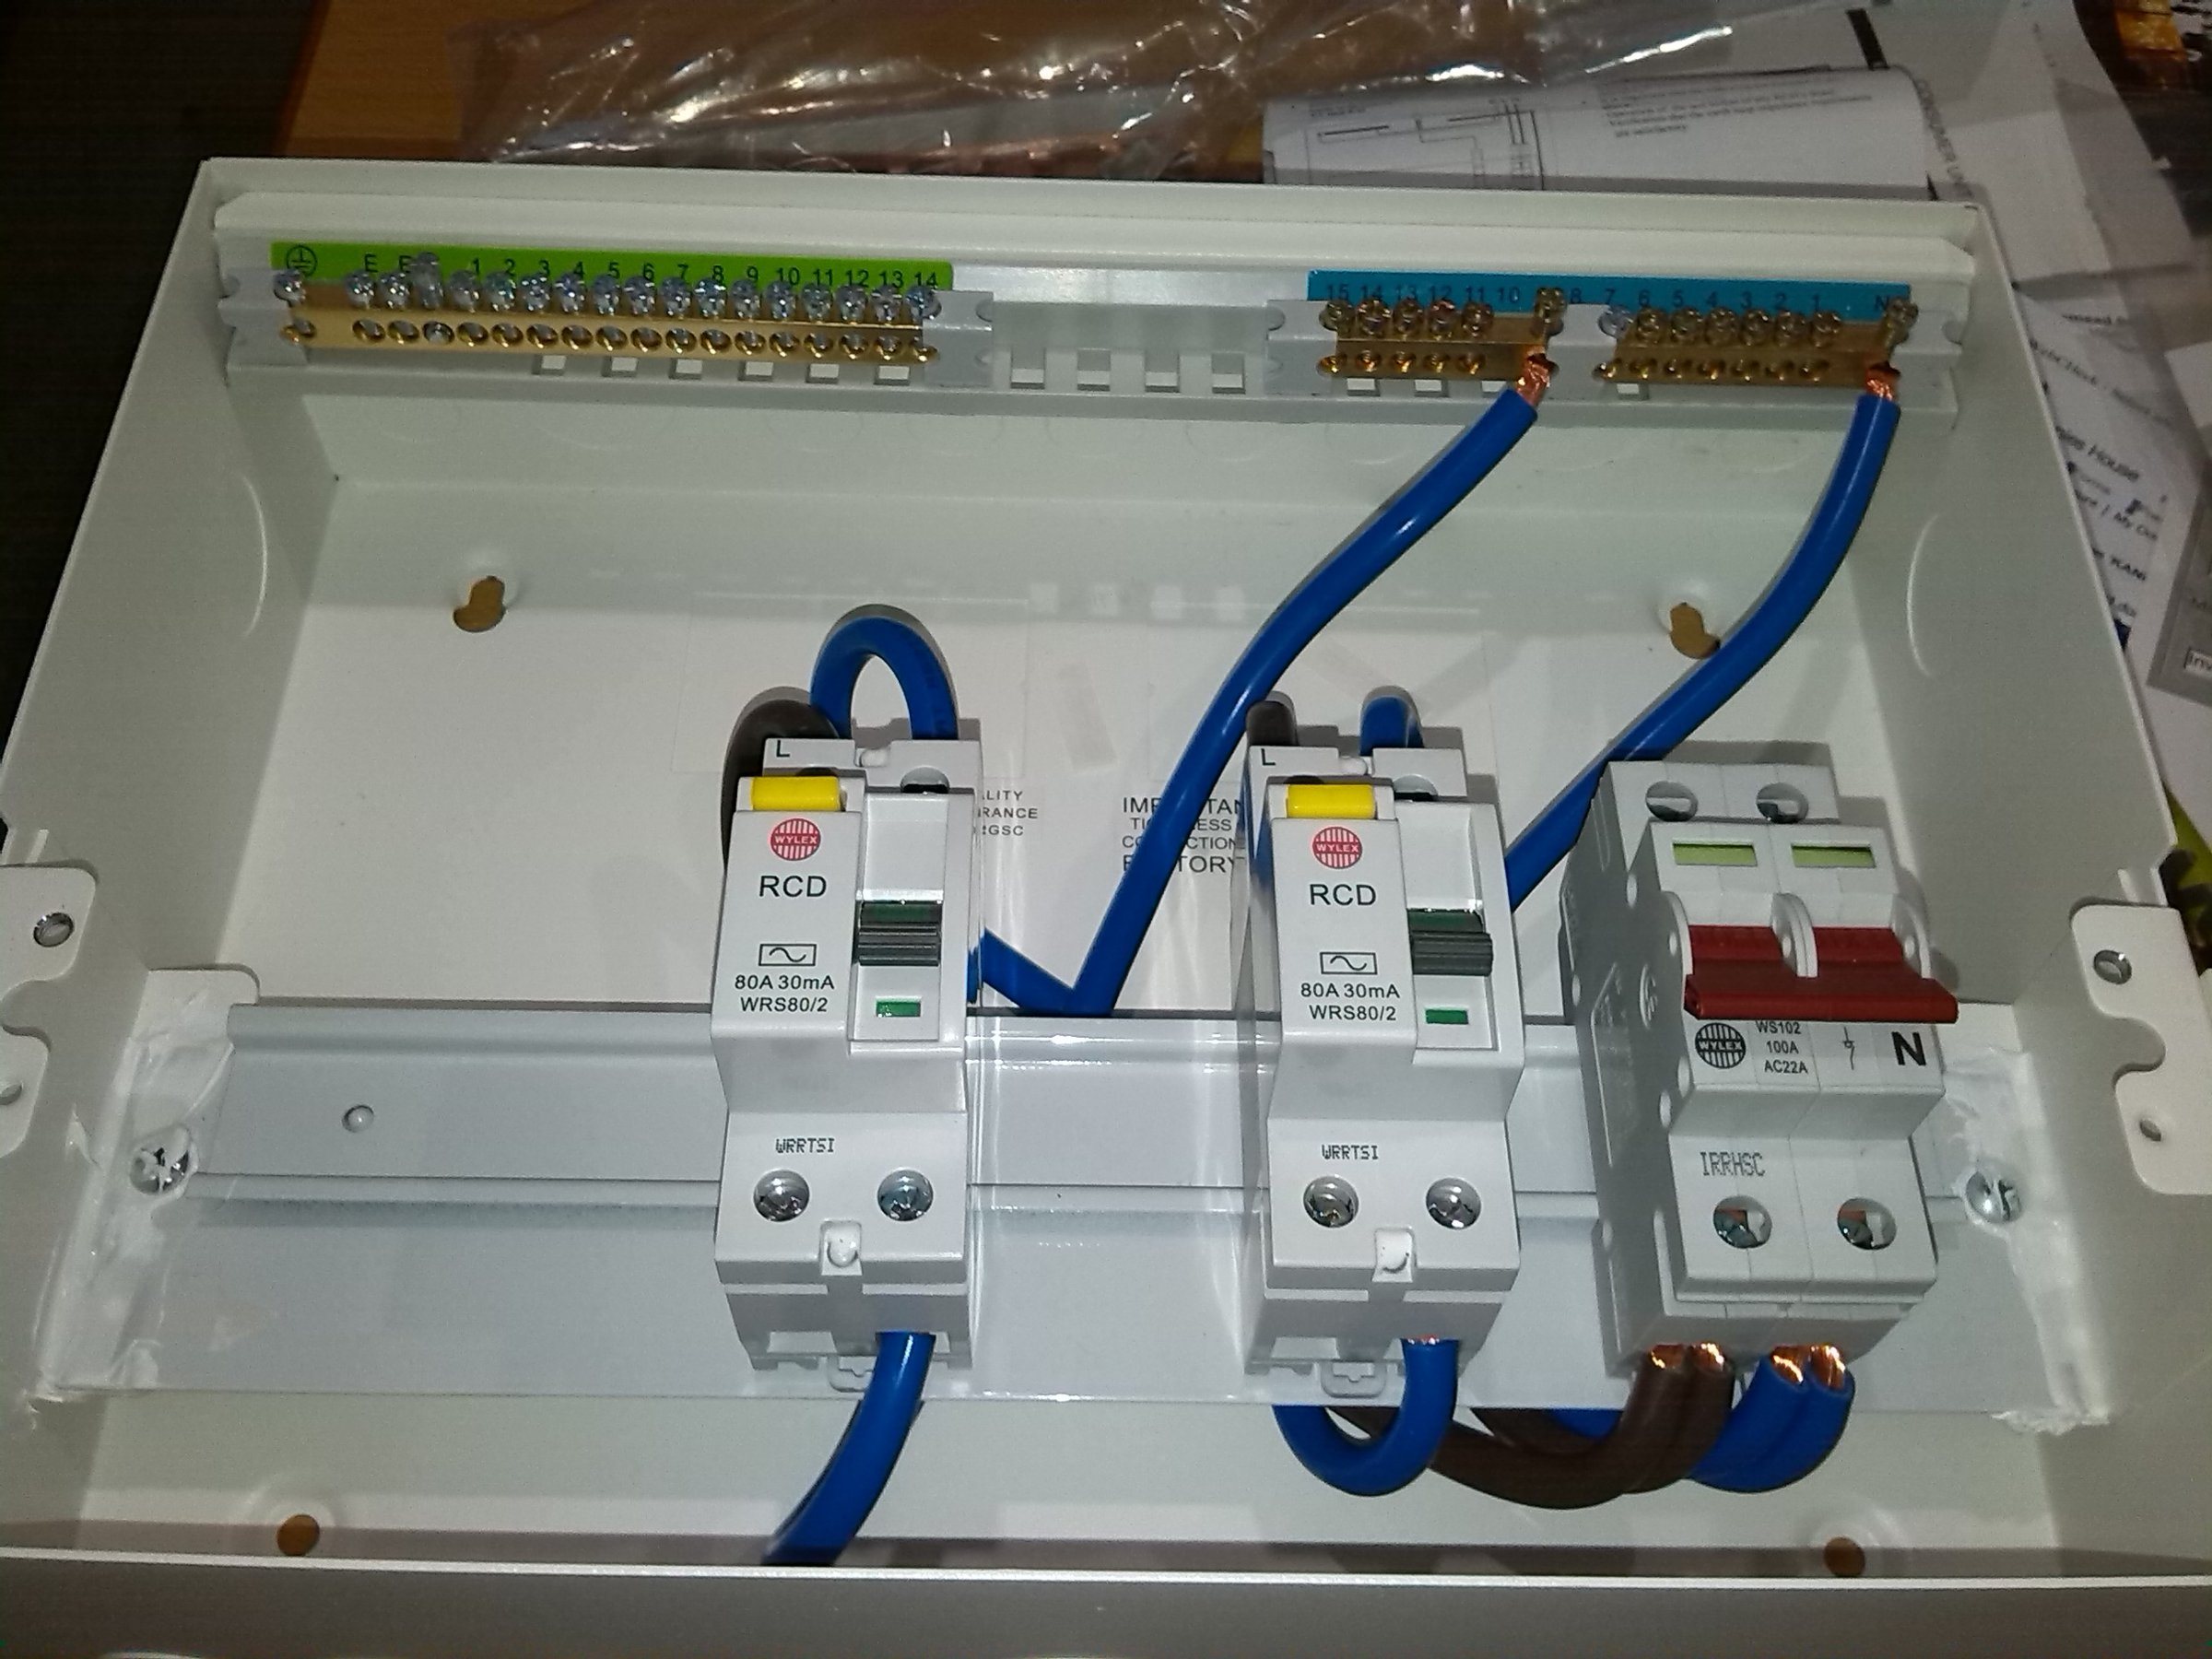 Delighted wiring diagram for garage consumer unit ideas wylex consumer unit rcd wiring diynot forums with 28 more ideas asfbconference2016 Image collections